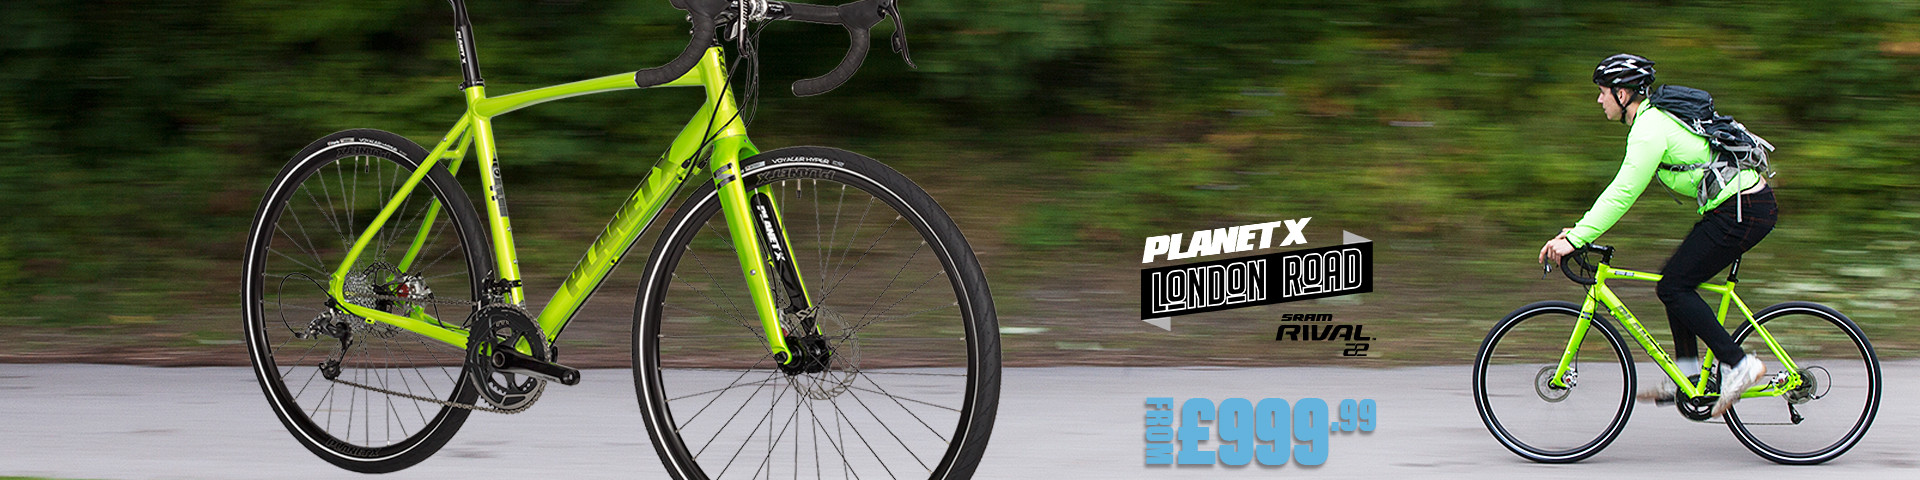 Planet X London Road bike